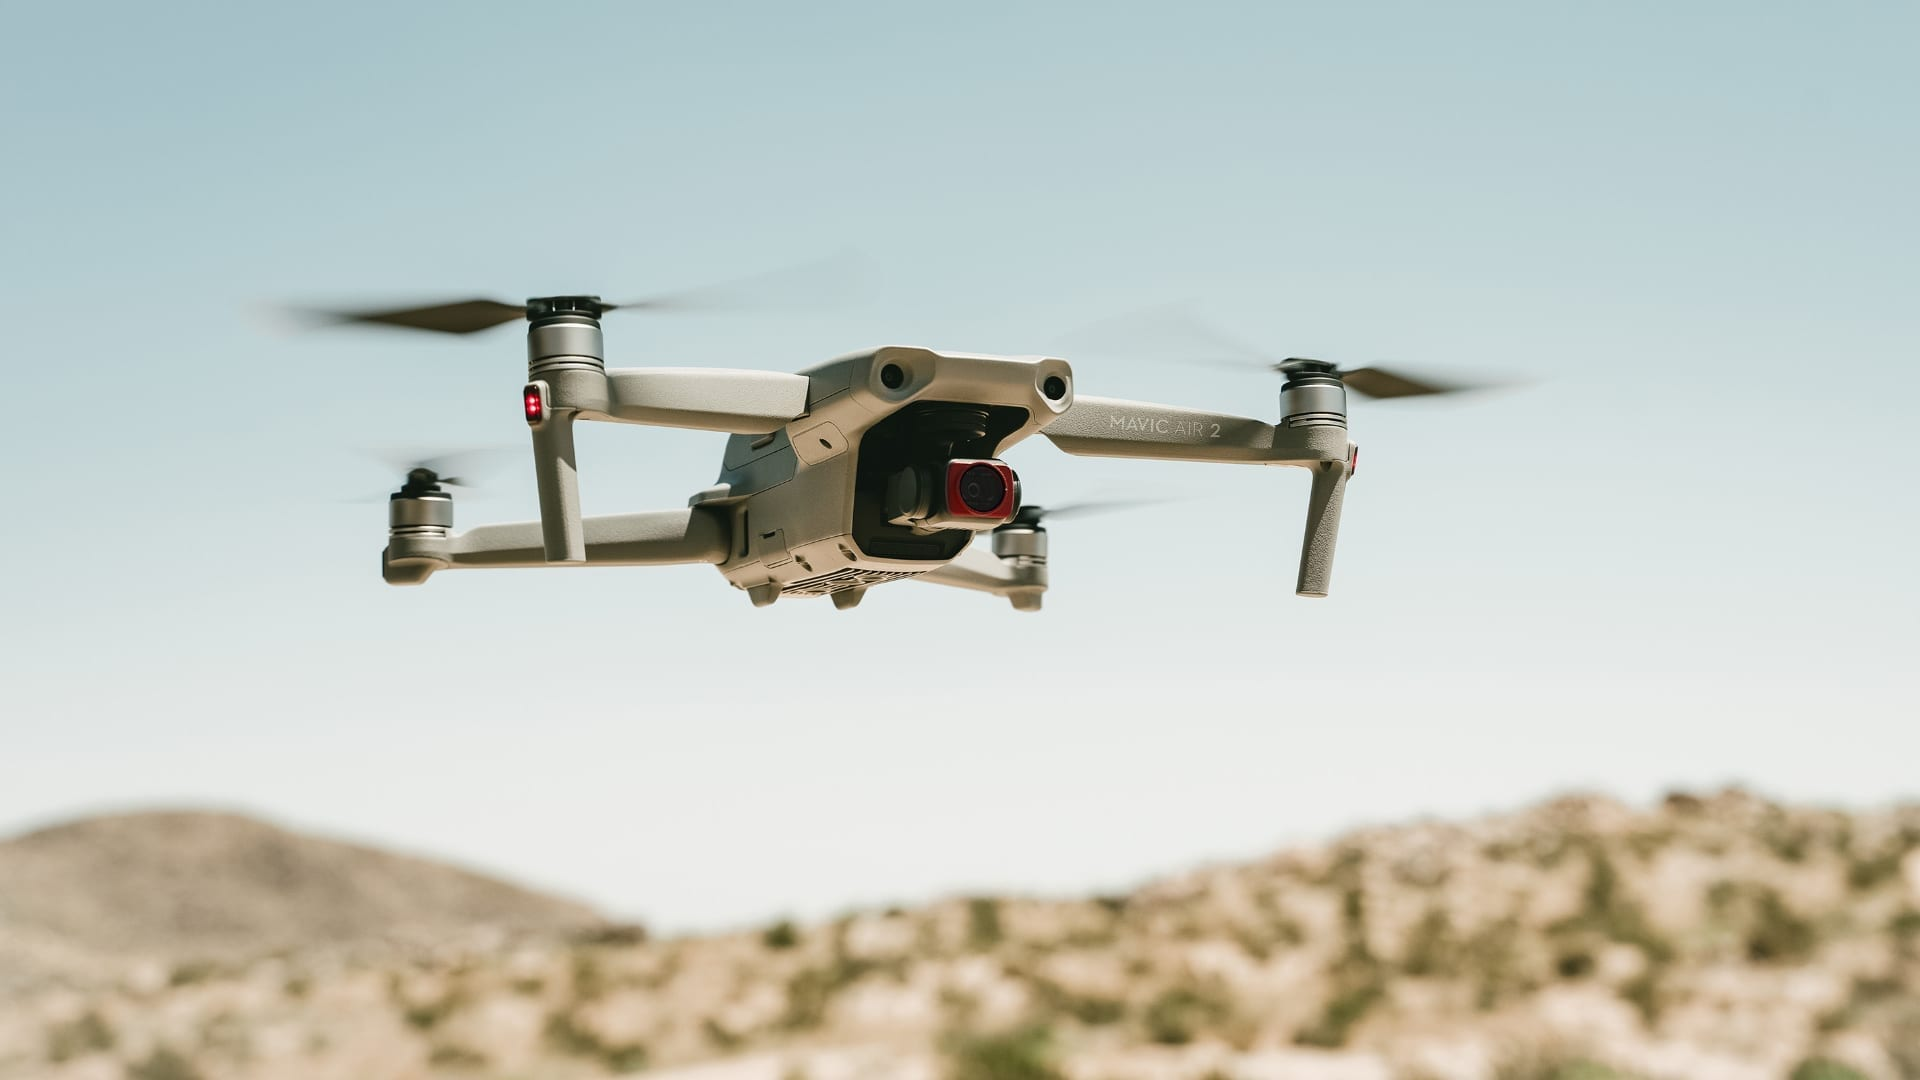 DJI drones are found to have security weakness, according to the NY Times